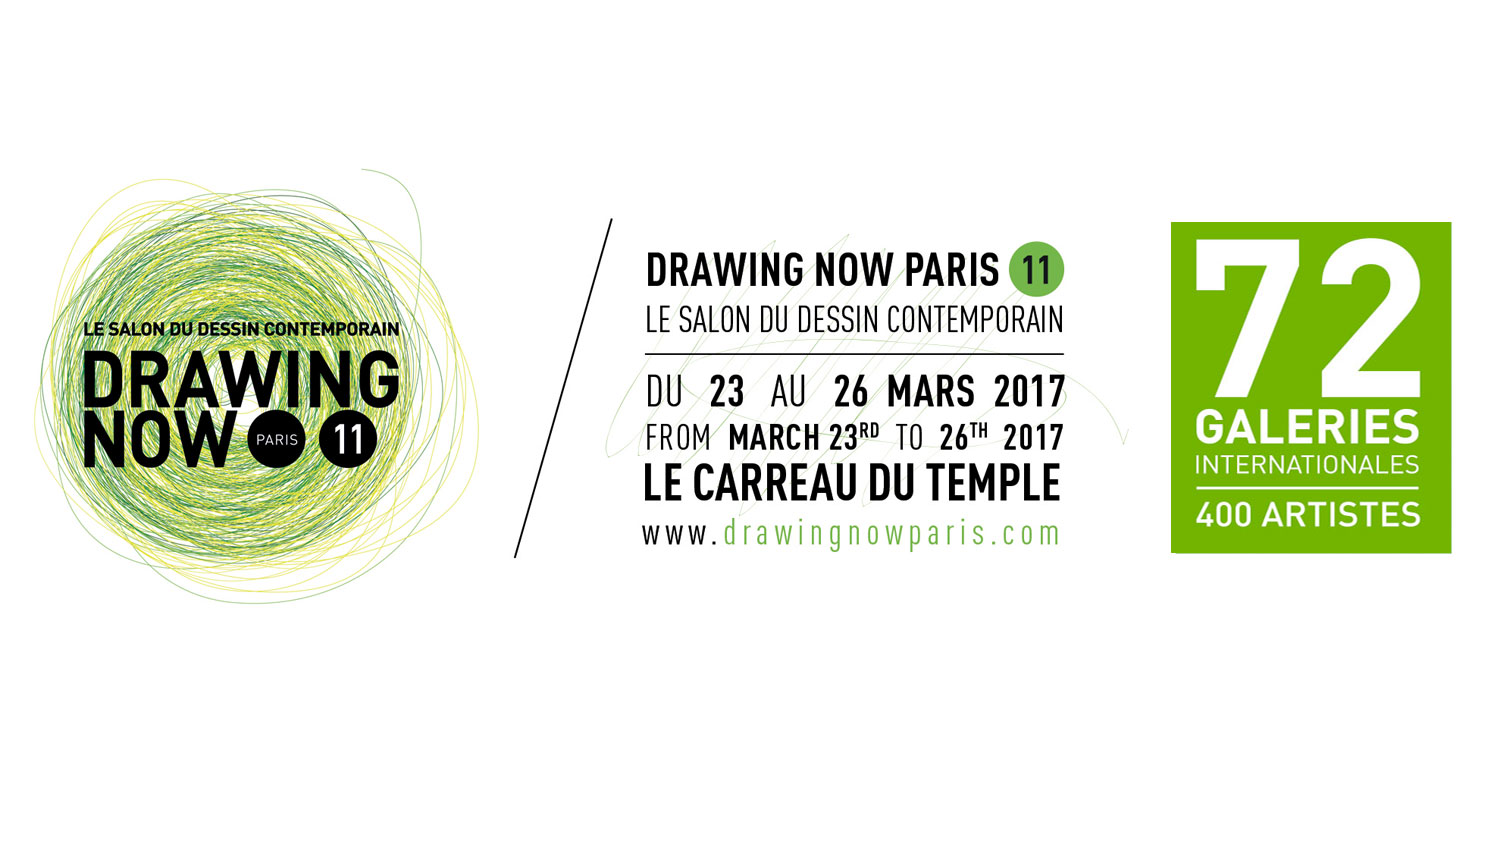 [PARTENARIAT] Drawing Now Paris ⎮ Le Salon du dessin contemporain - 11e édition